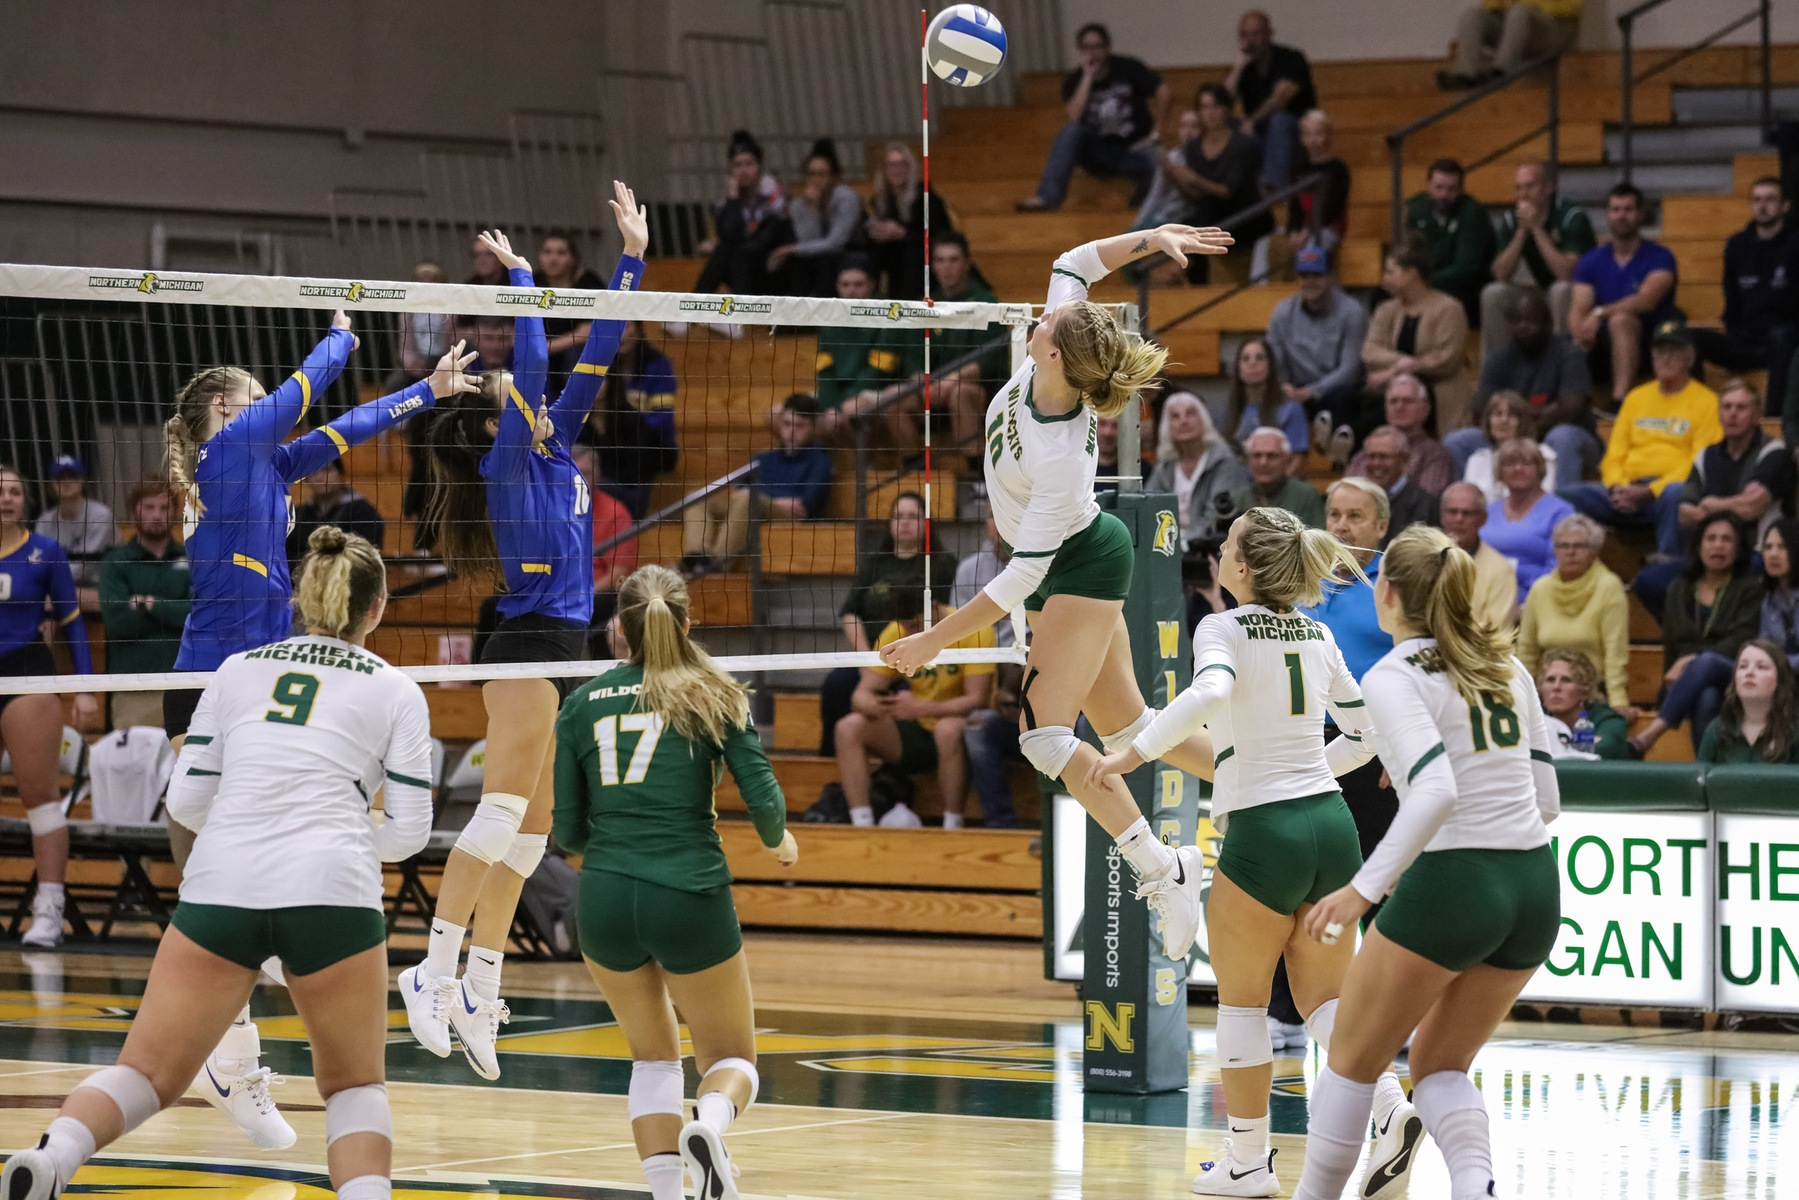 NMU Falls in Five Set Thriller with SVSU